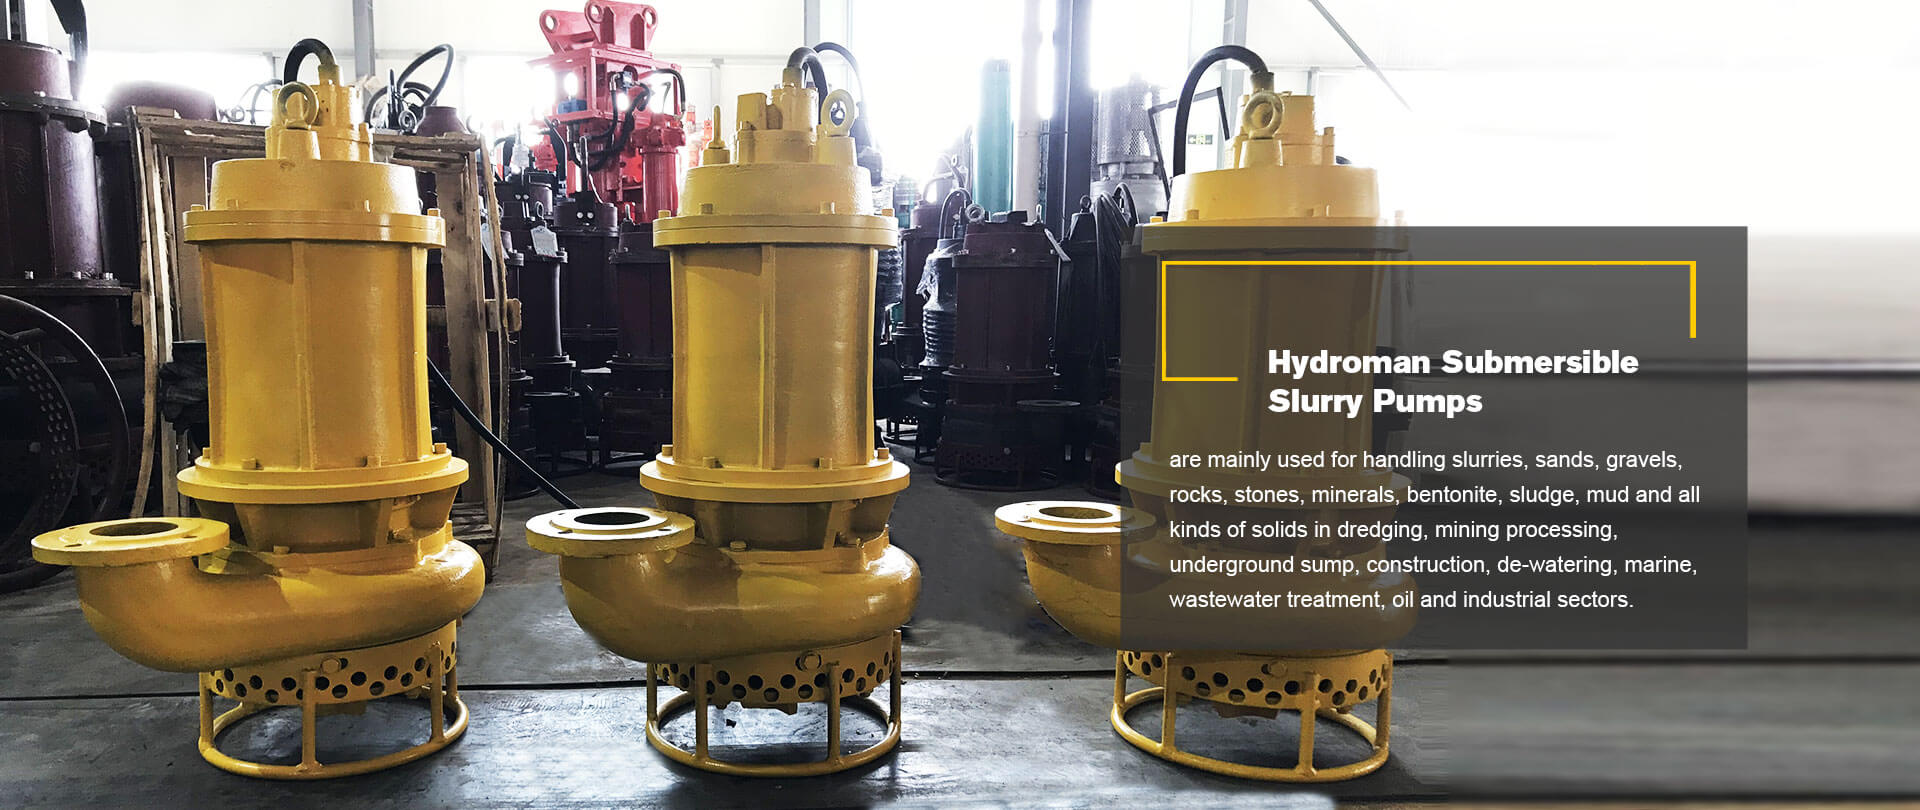 Hydroman Submersible Slurry Pumps